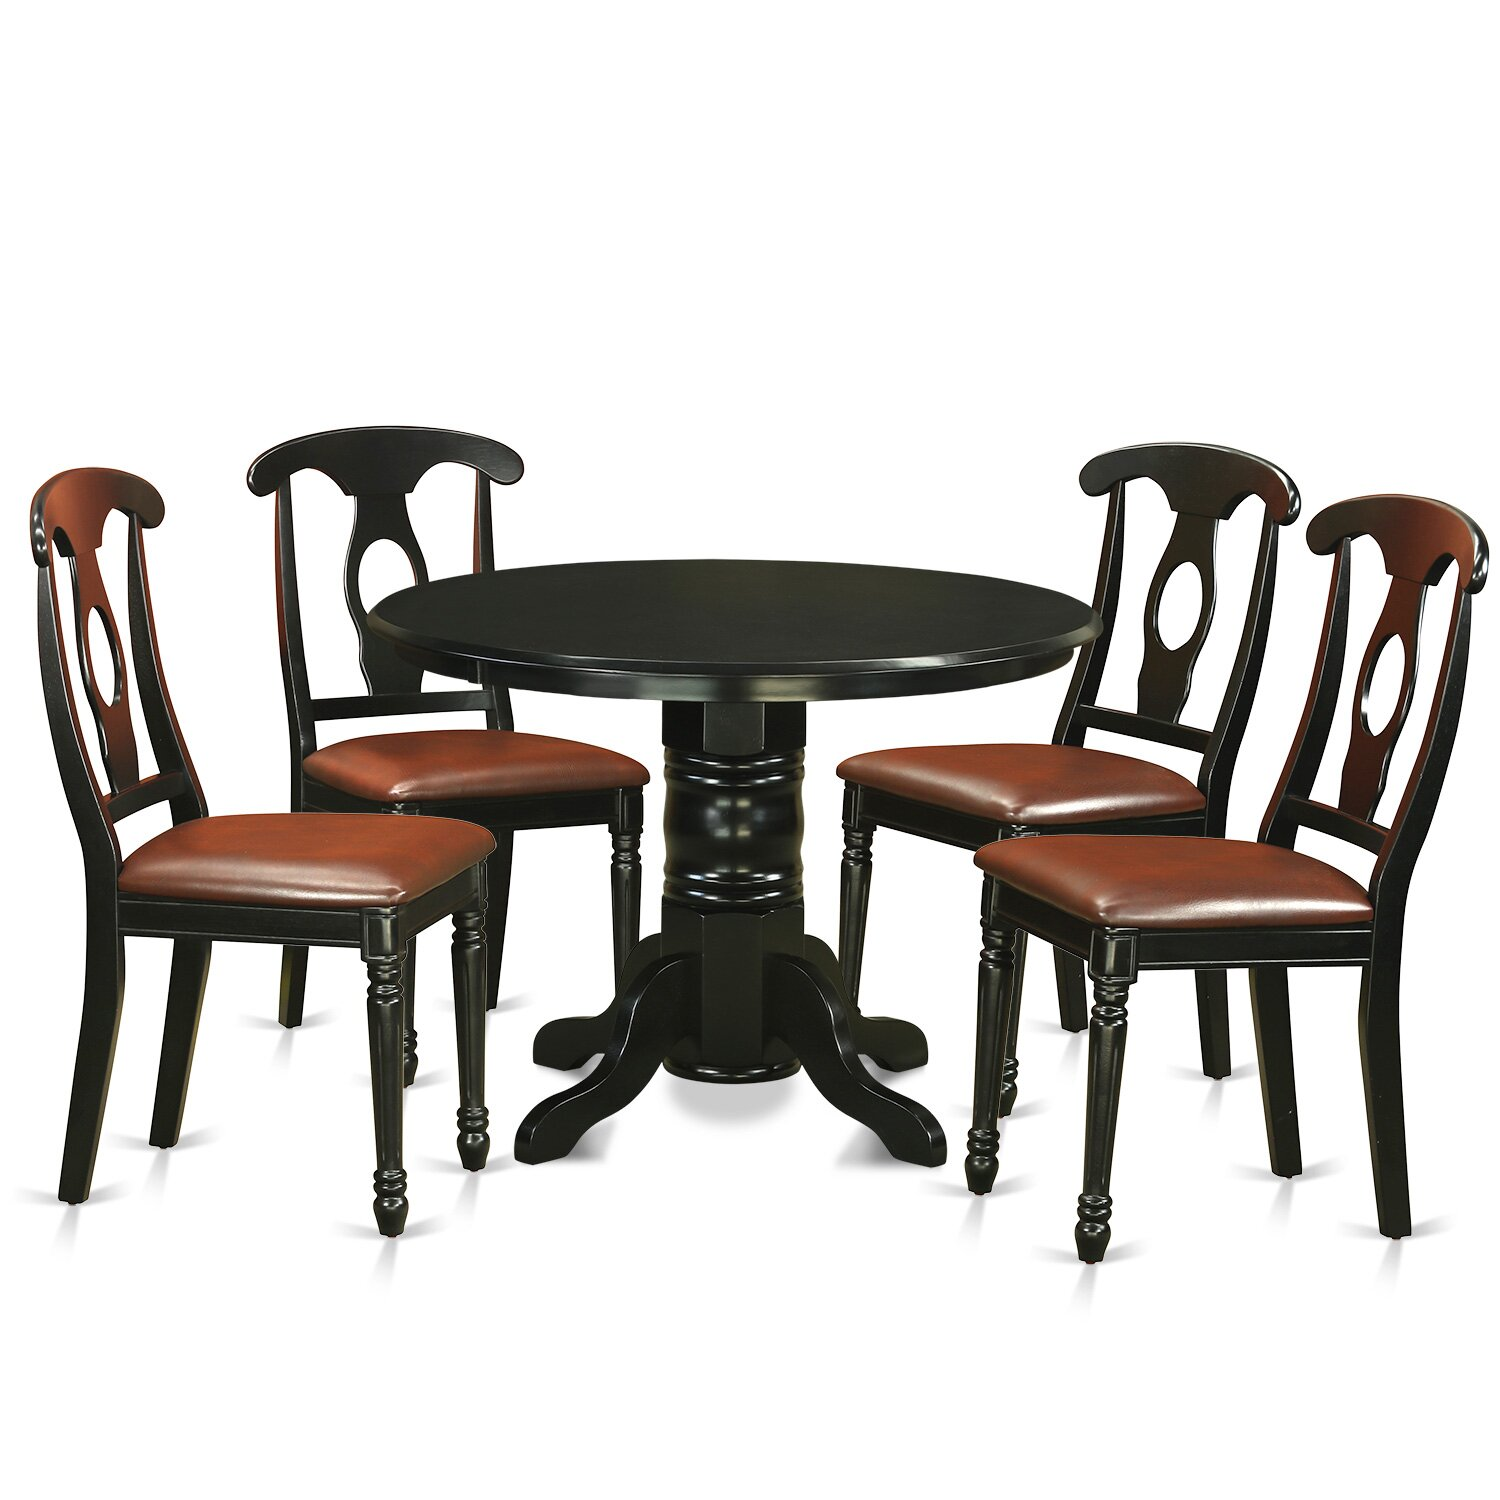 East west shelton 5 piece dining set reviews wayfair for Dining room table and 4 chairs